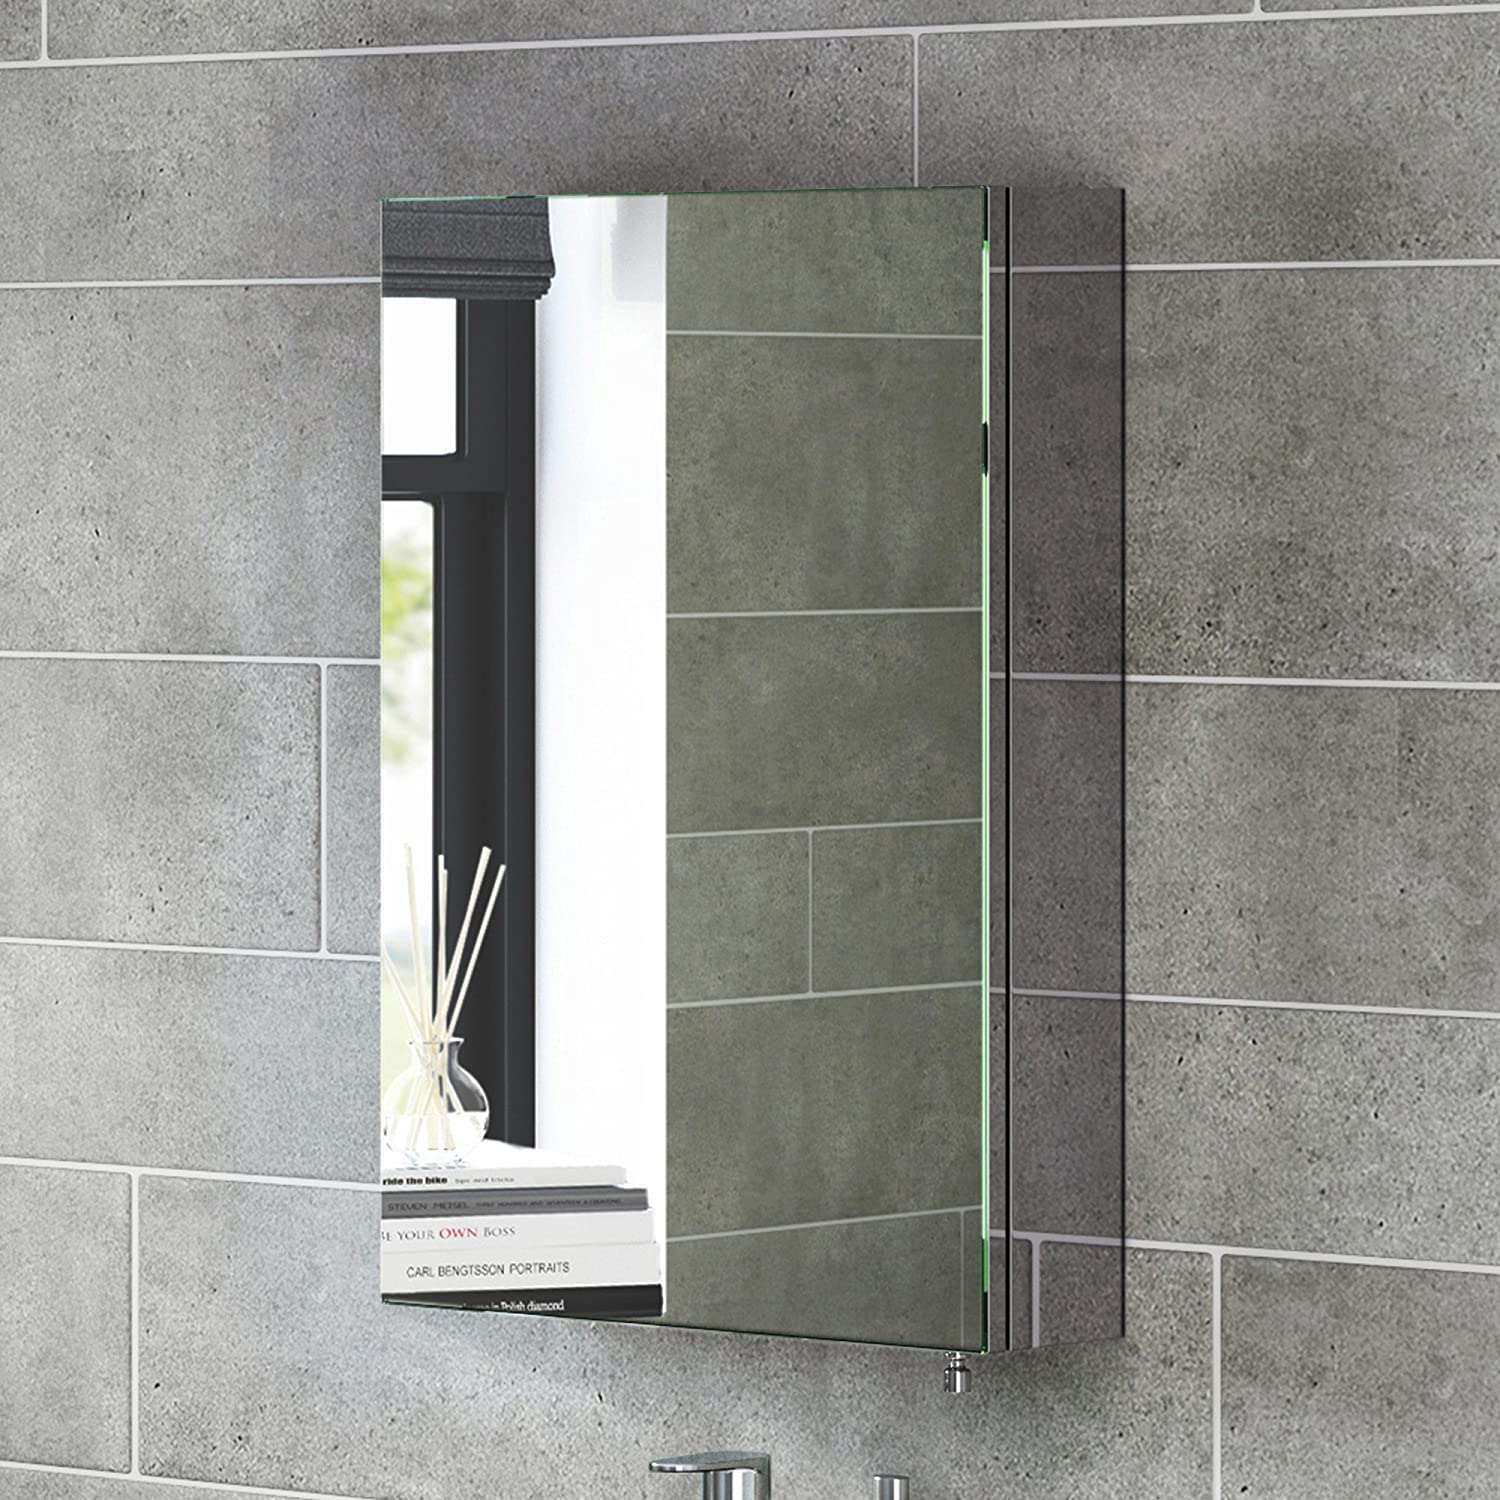 600 X 400 Stainless Steel Bathroom Mirror Cabinet Modern Single Door Storage Unit MC120